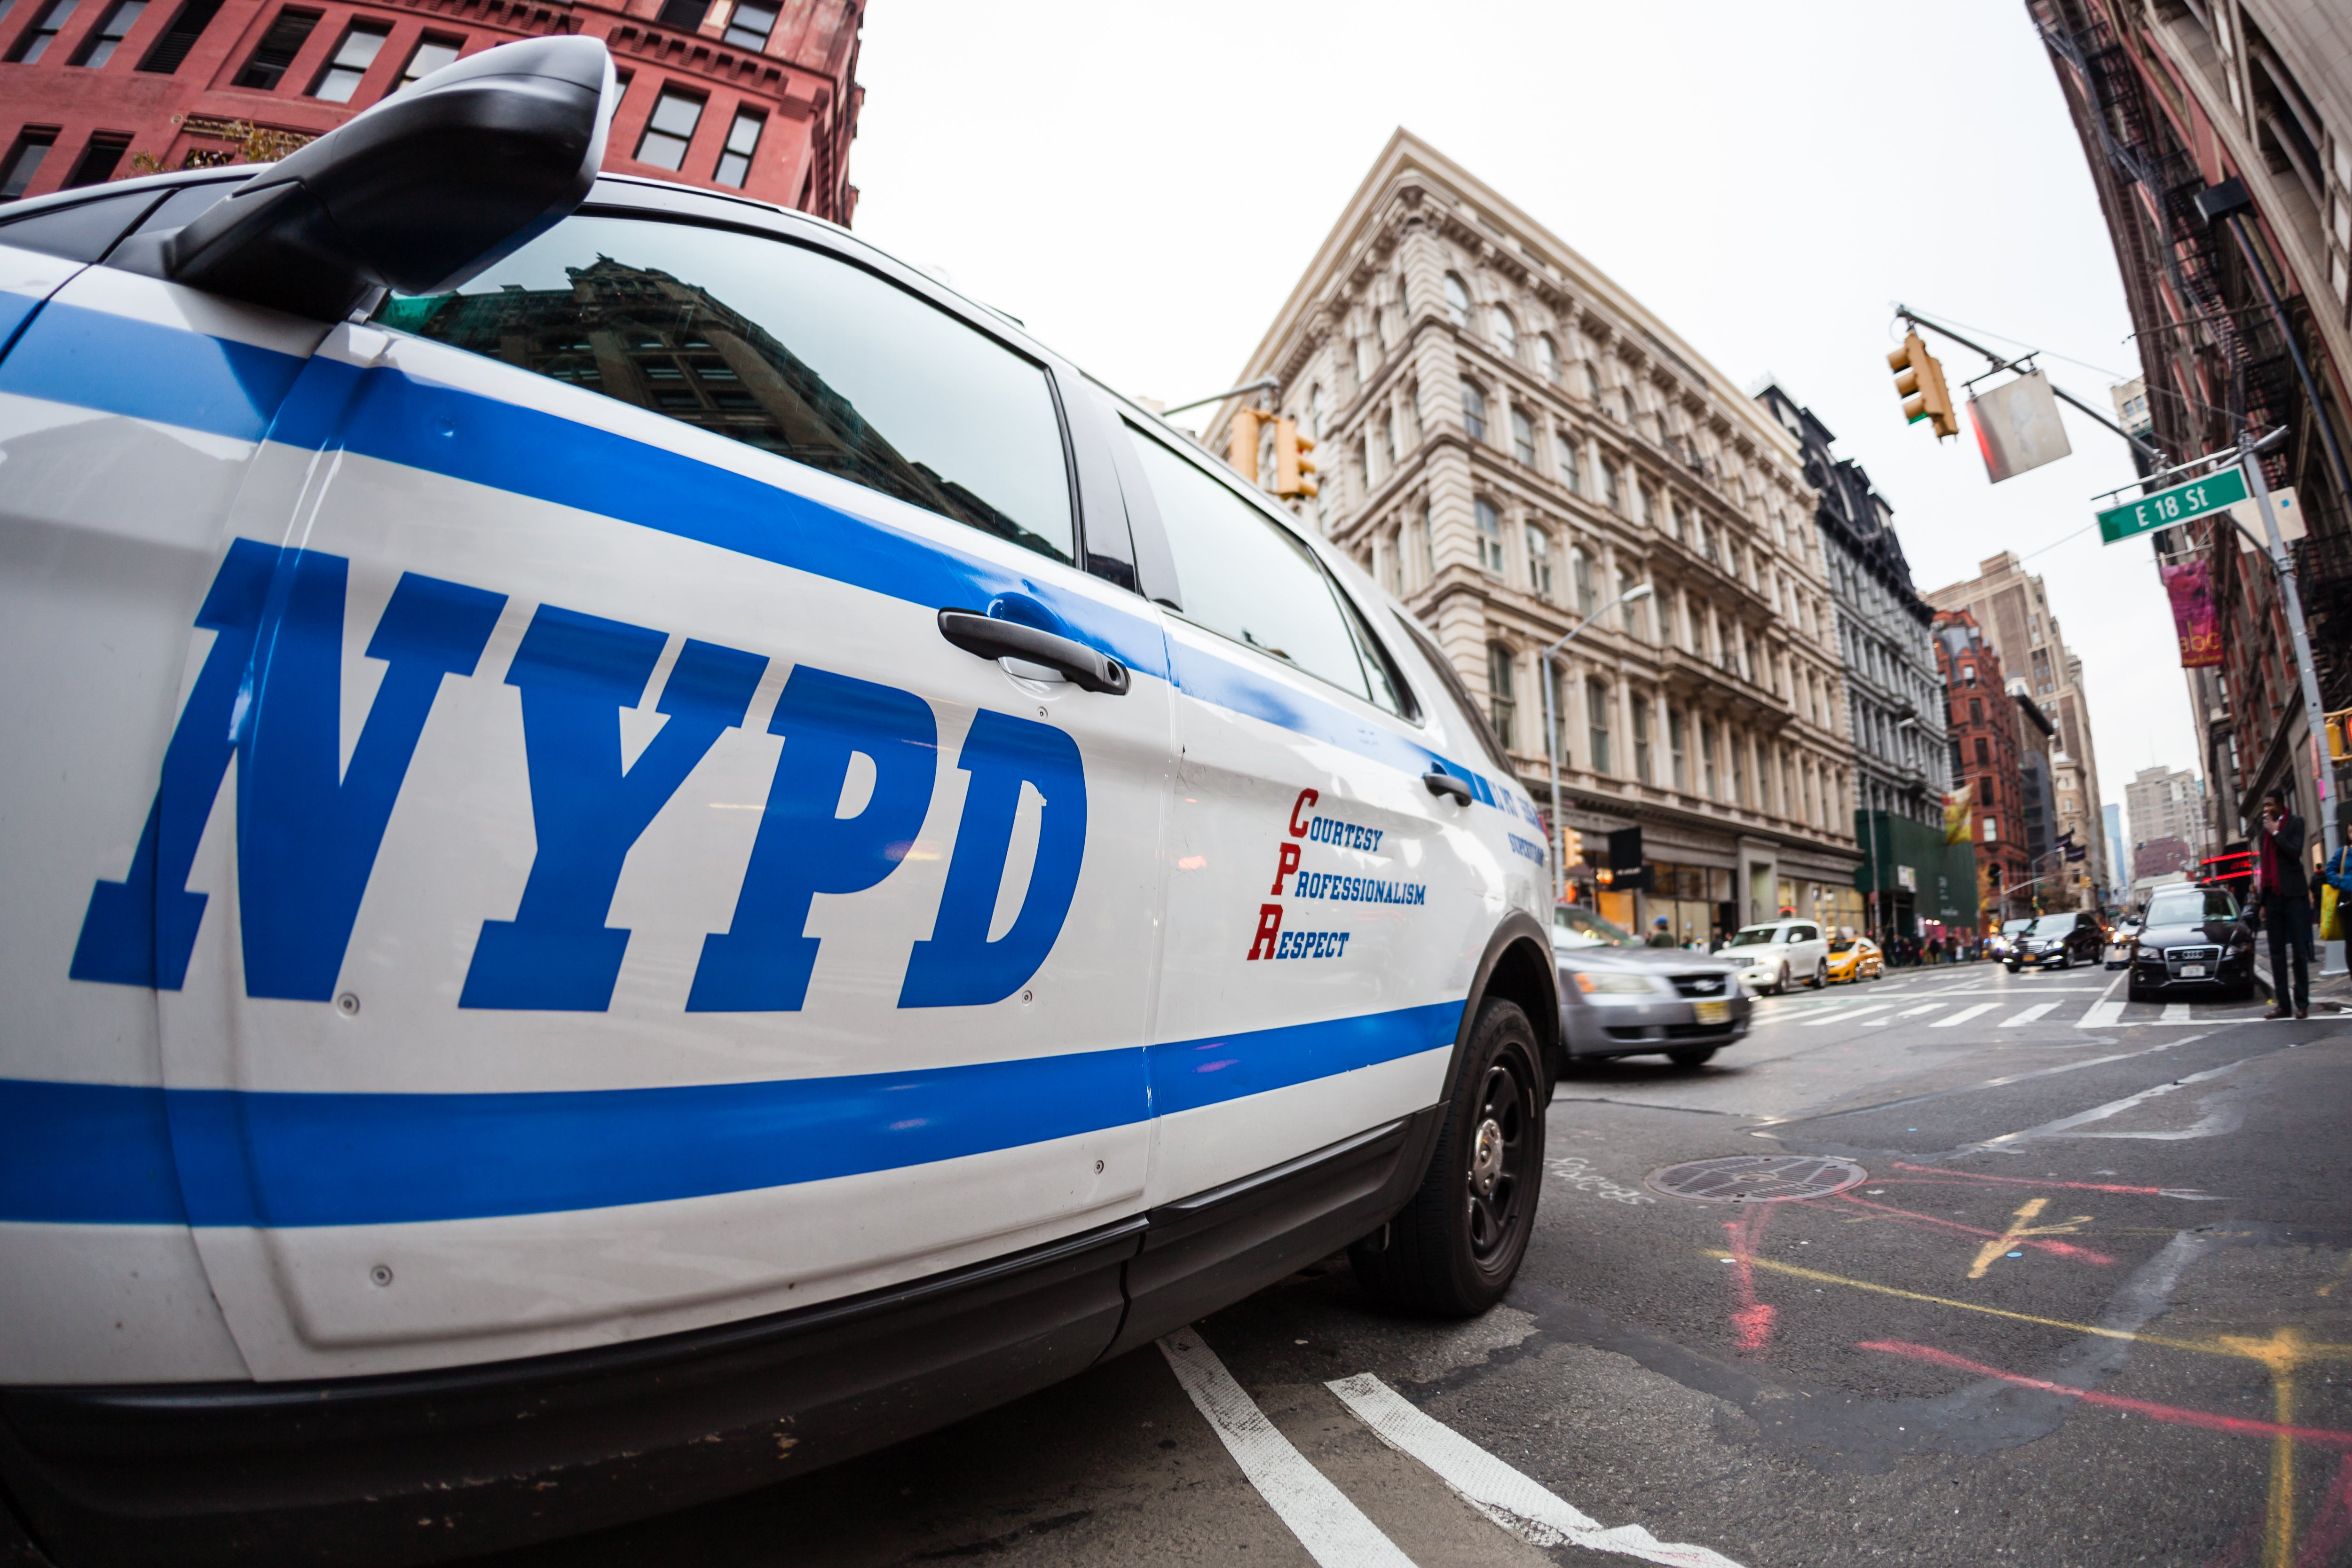 Harlem Restaurant Owner Is Suing The NYPD For Arresting Him After Helping White Patrons